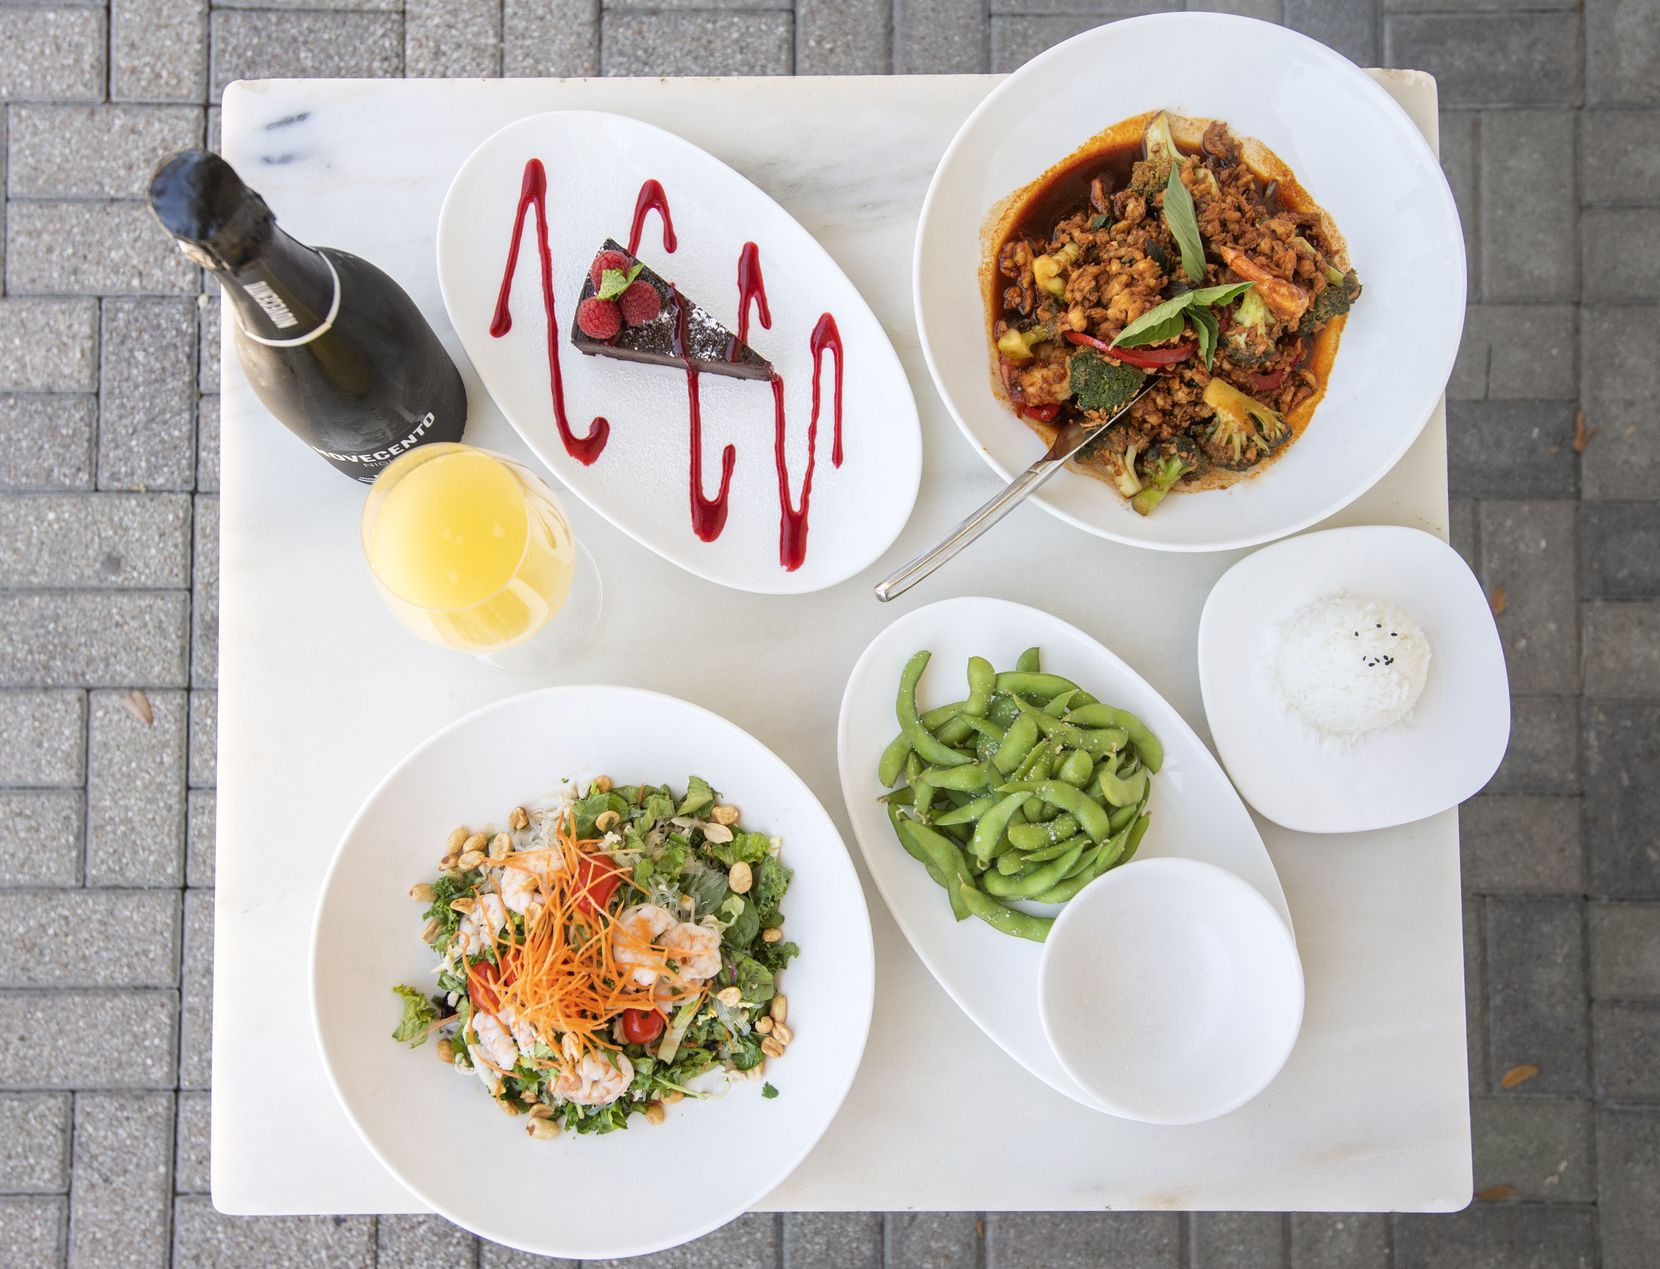 Asian Mint offers various Mother's Day dishes. Asian noodle salad, bottom right; shrimp and chicken basil, top right; edamame, bottom right; and chocolate flourless cake, top right; are photographed, April 23, 2020, at the Dallas location.